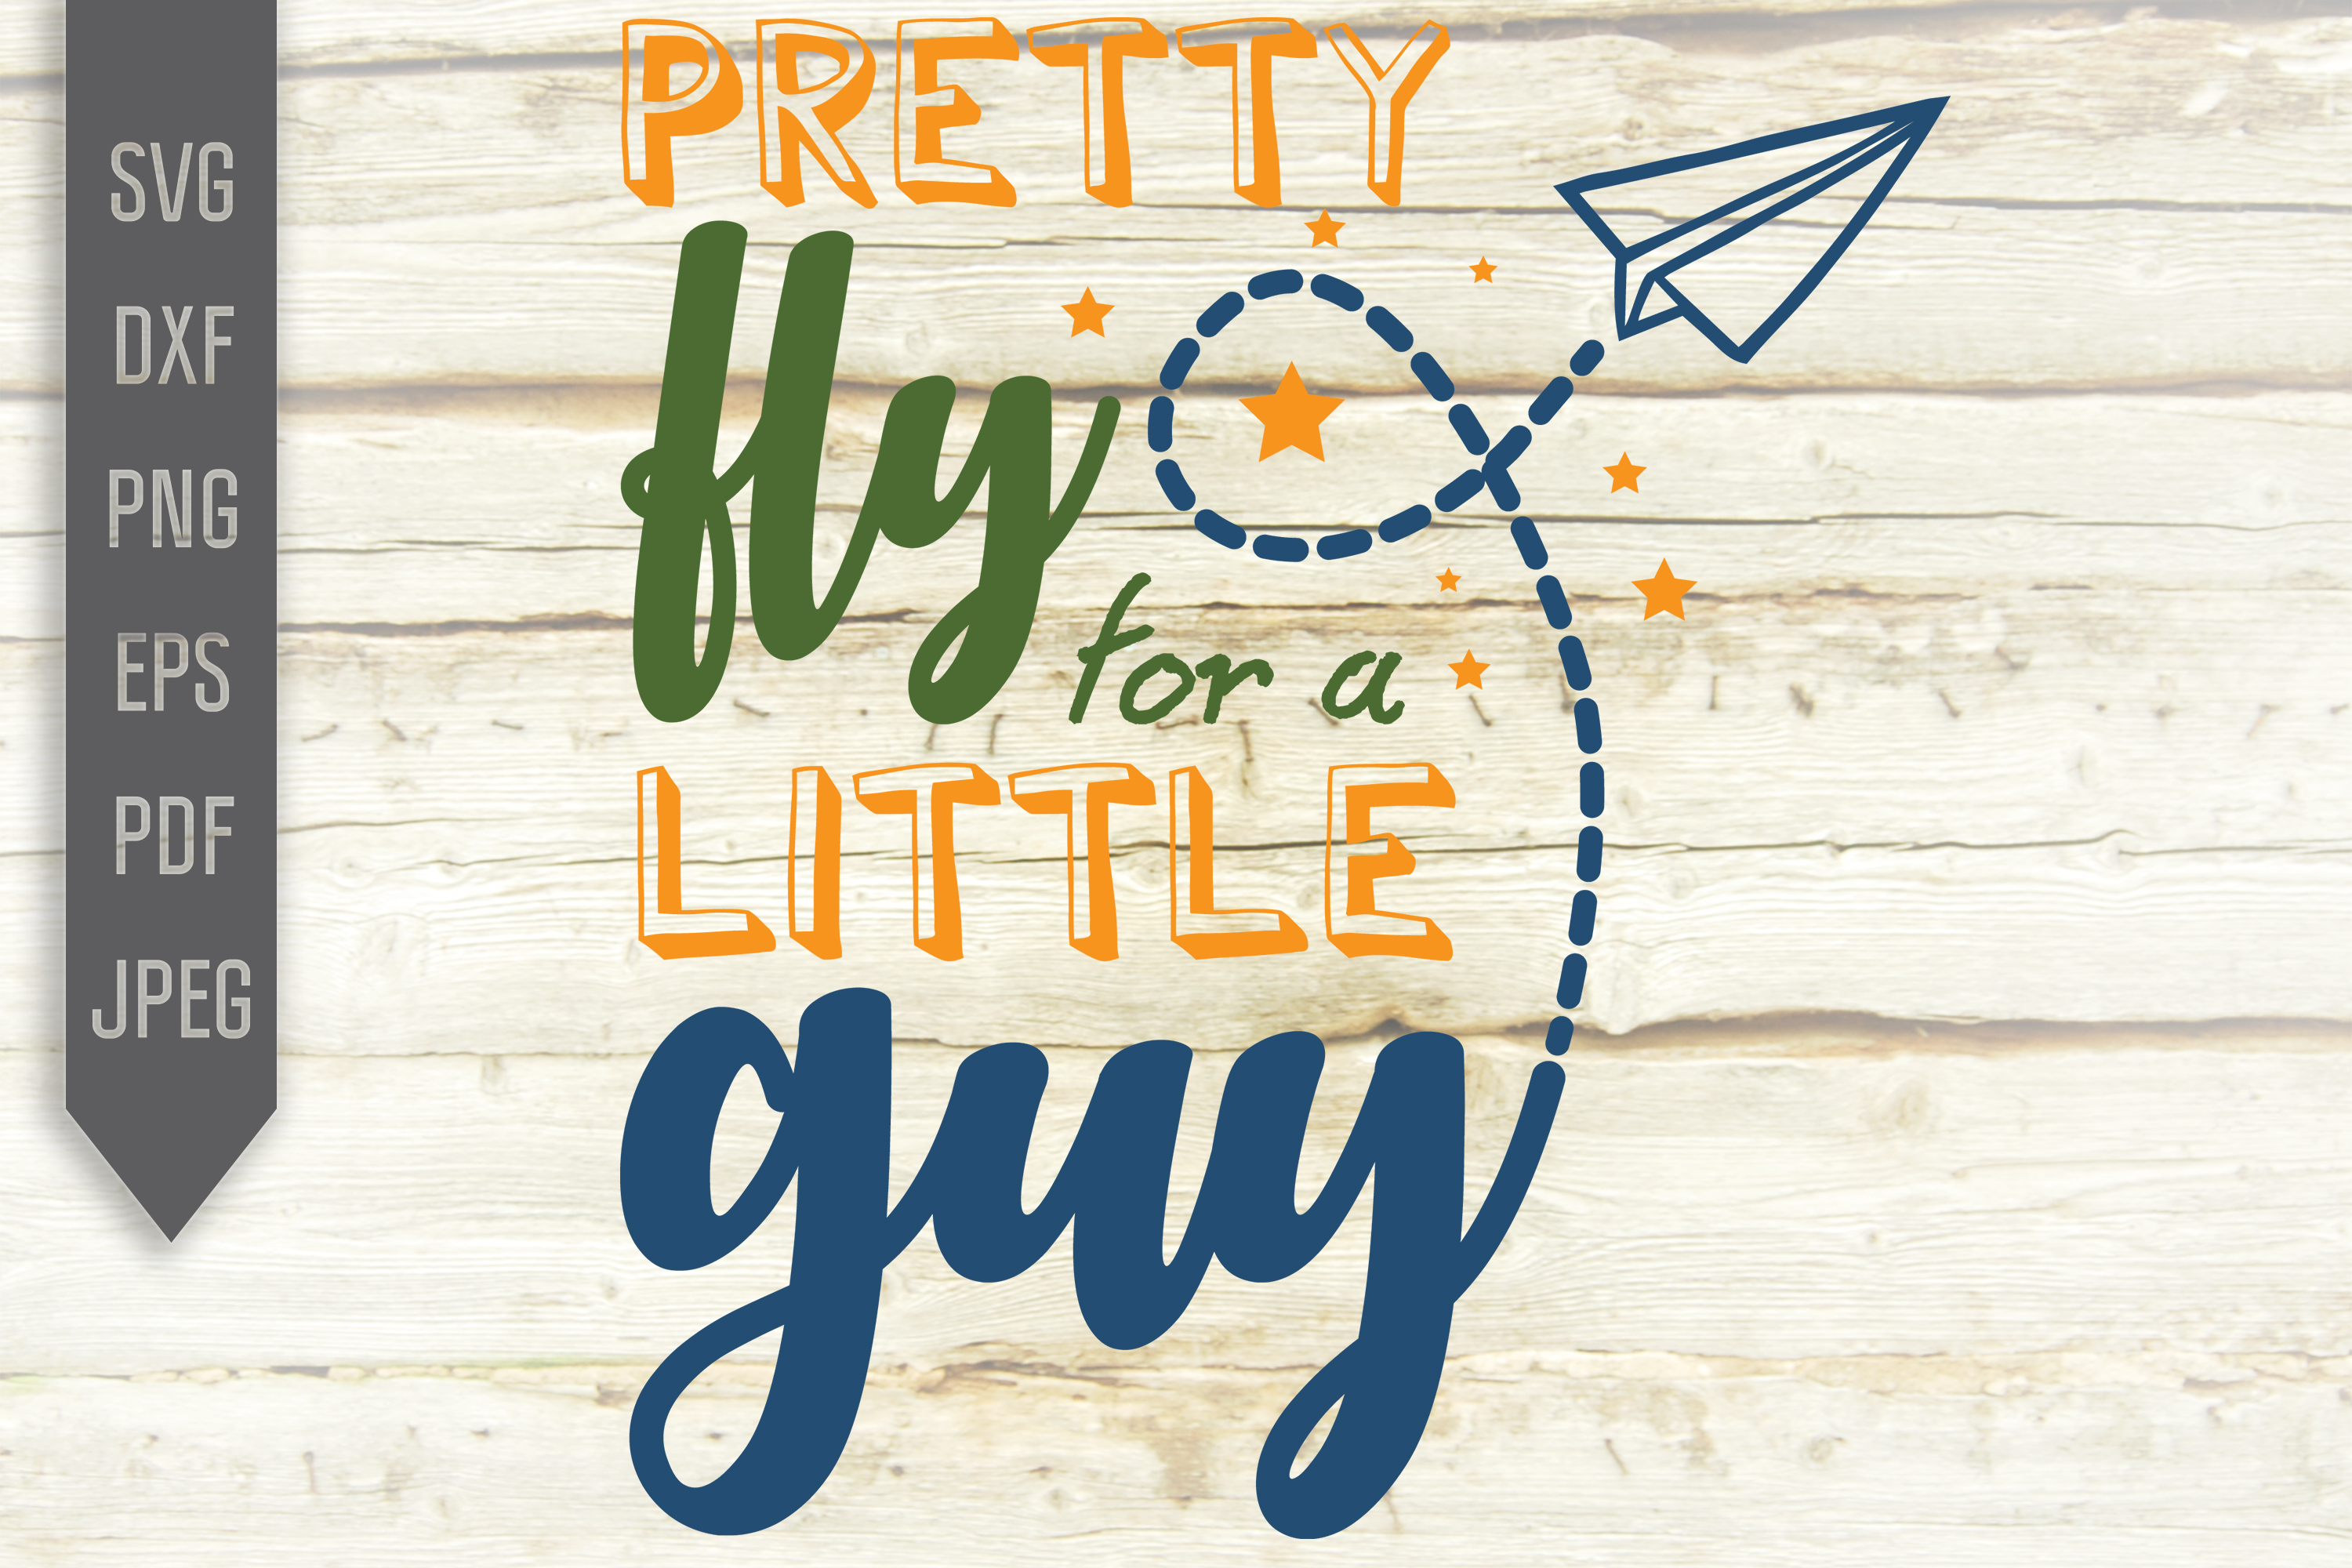 Download Free Pretty Fly For A Little Guy Svg Baby Graphic By Svglaboratory for Cricut Explore, Silhouette and other cutting machines.